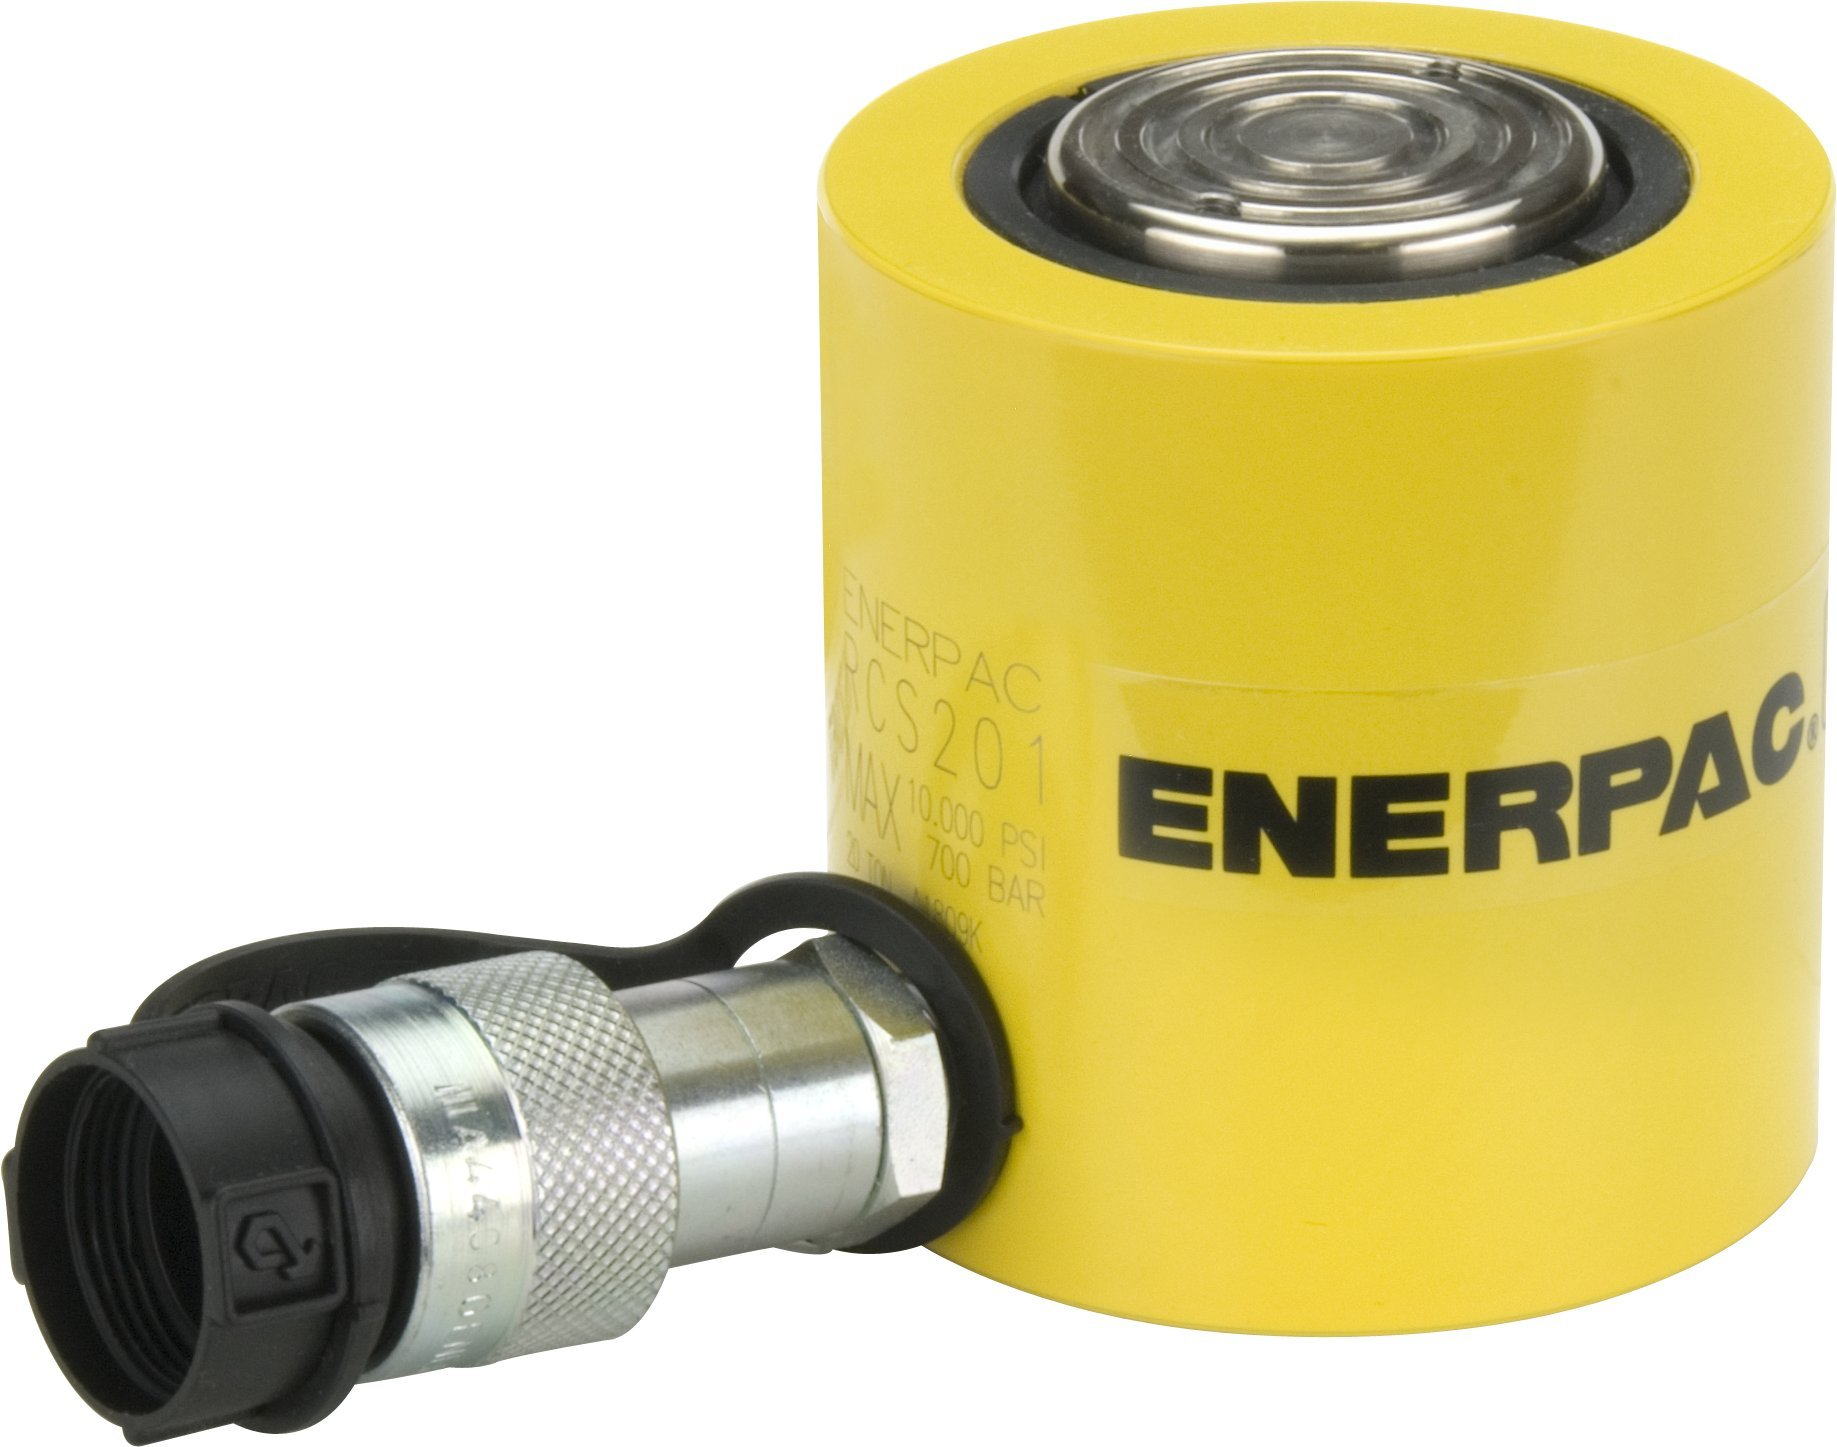 Enerpac RCS-201 Single-Acting Low-Height Hydraulic Cylinder with 20 Ton Capacity, Single Port, 1.75'' Stroke Length